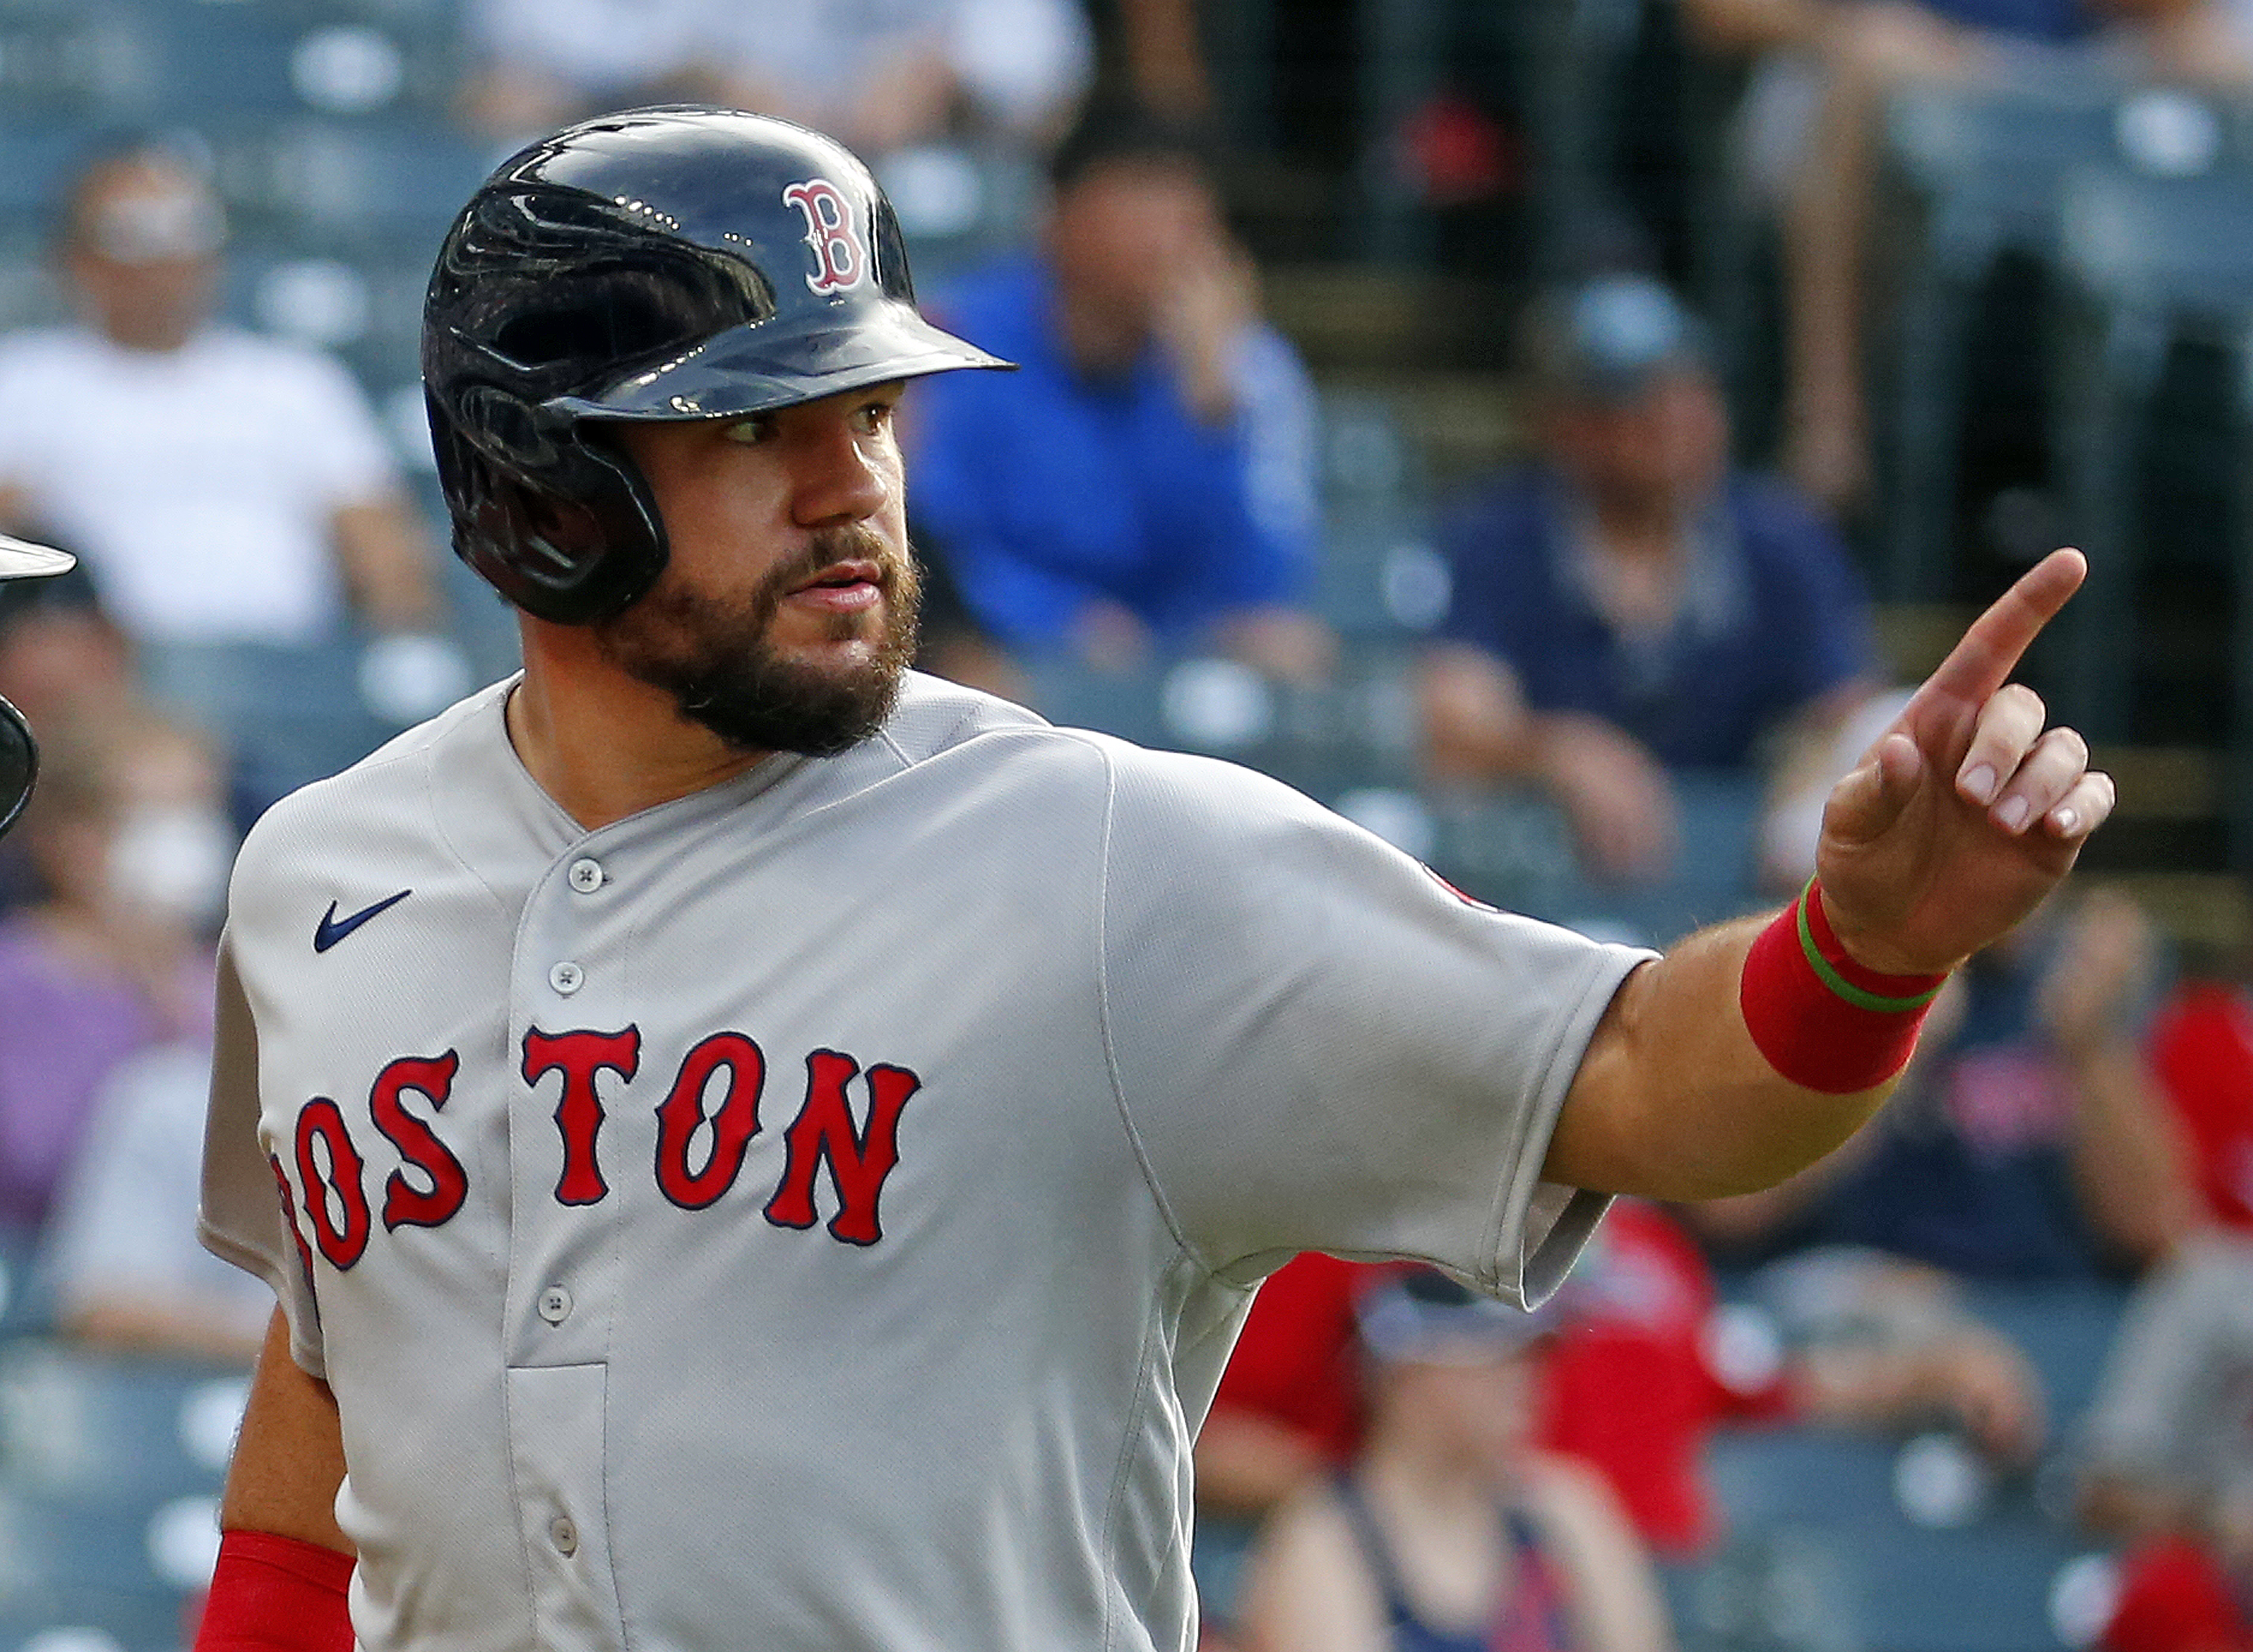 Kyle Schwarber of the Boston Red Sox celebrates after scoring on an RBI double off the bat of J.D. Martinez in the fifth inning against the Cleveland Indians during the game at Progressive Field on August 29, 2021 in Cleveland, Ohio.